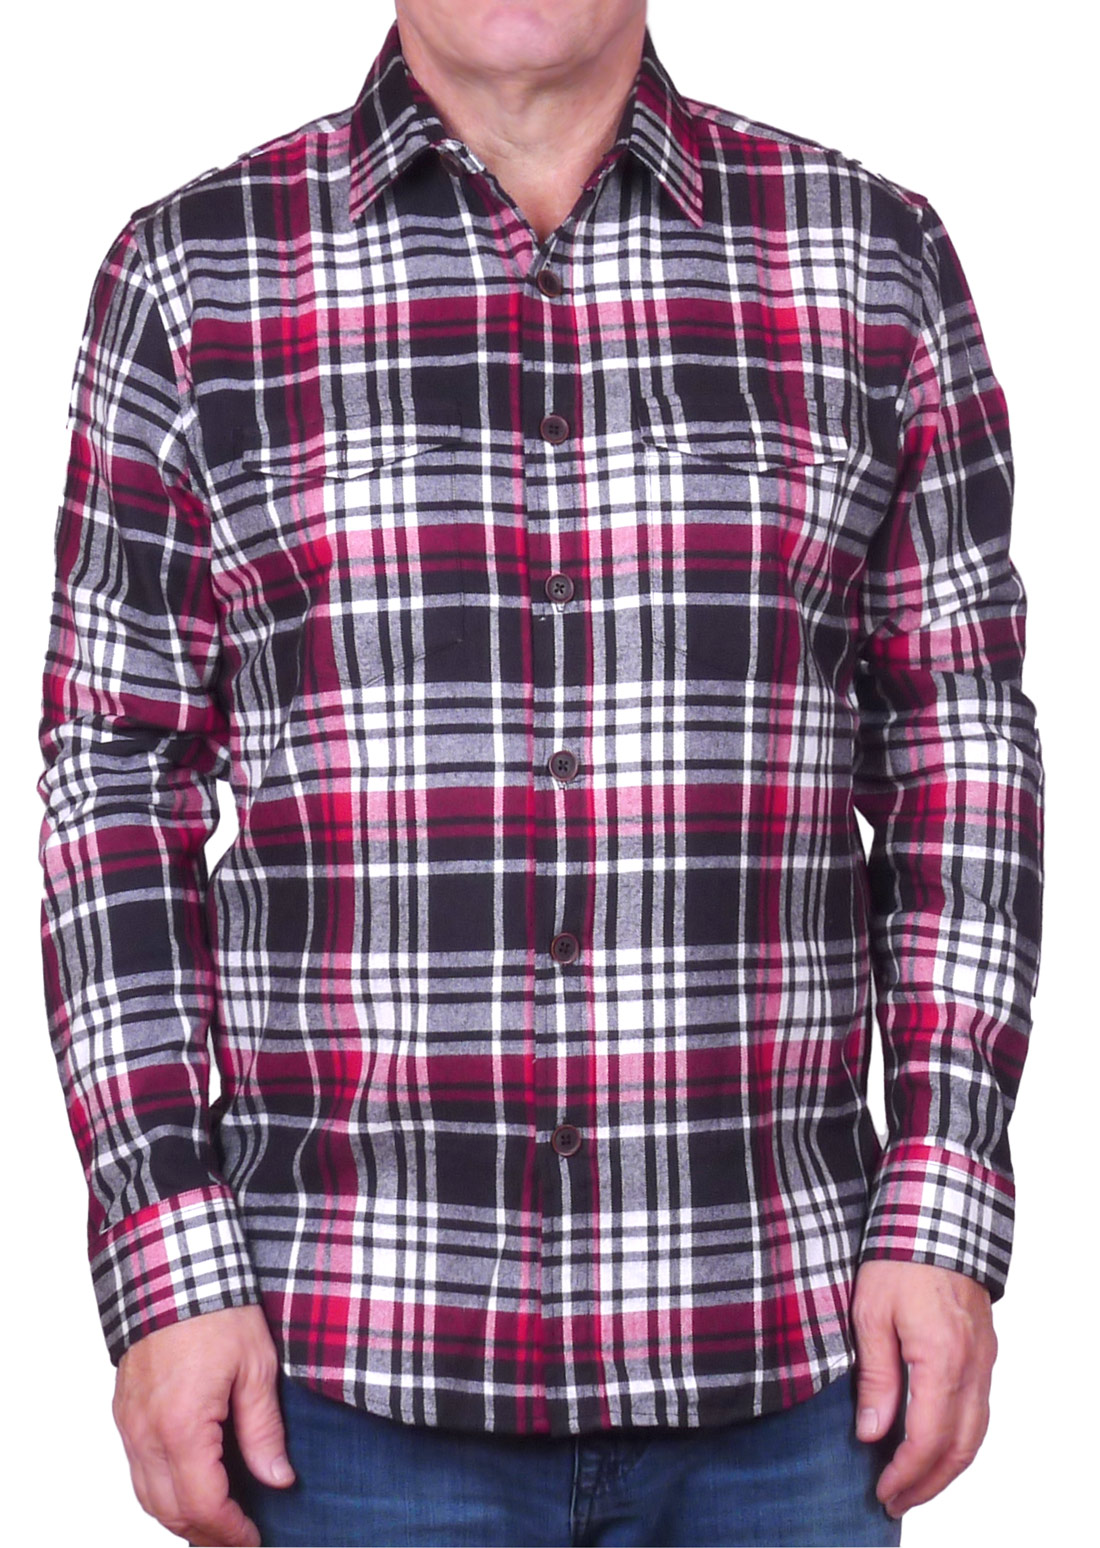 Image of Long Sleeve Flannel - FLK